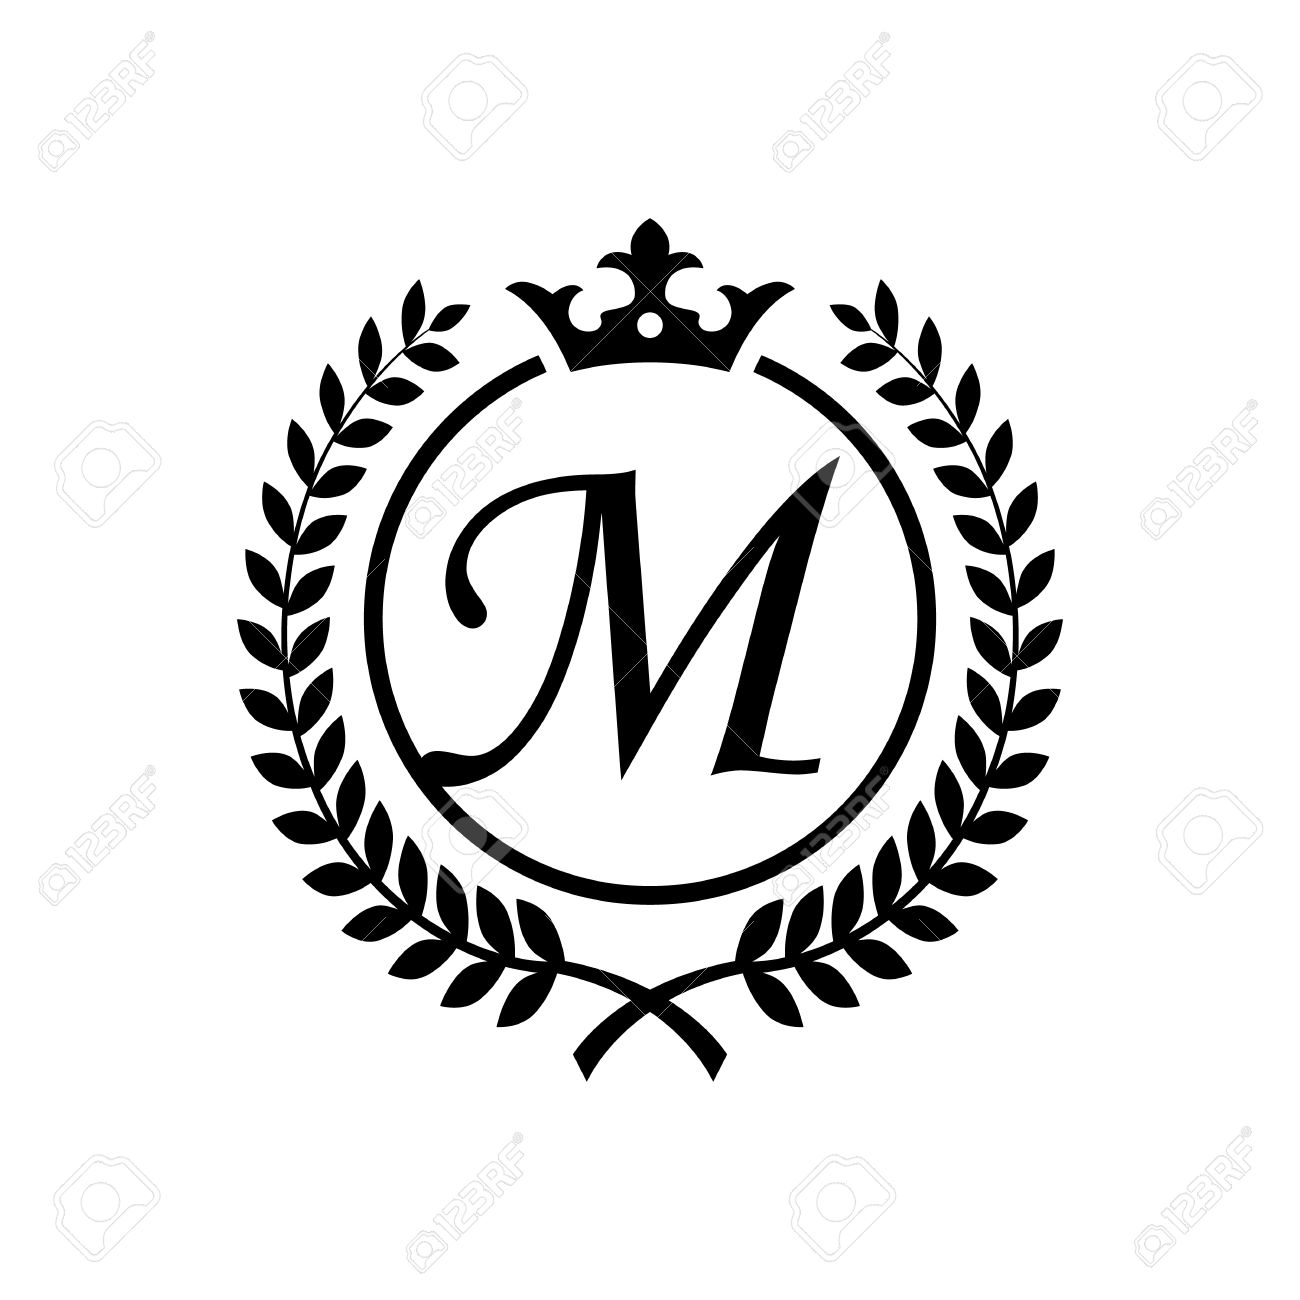 Royal letter m symbol stock vector 66644105